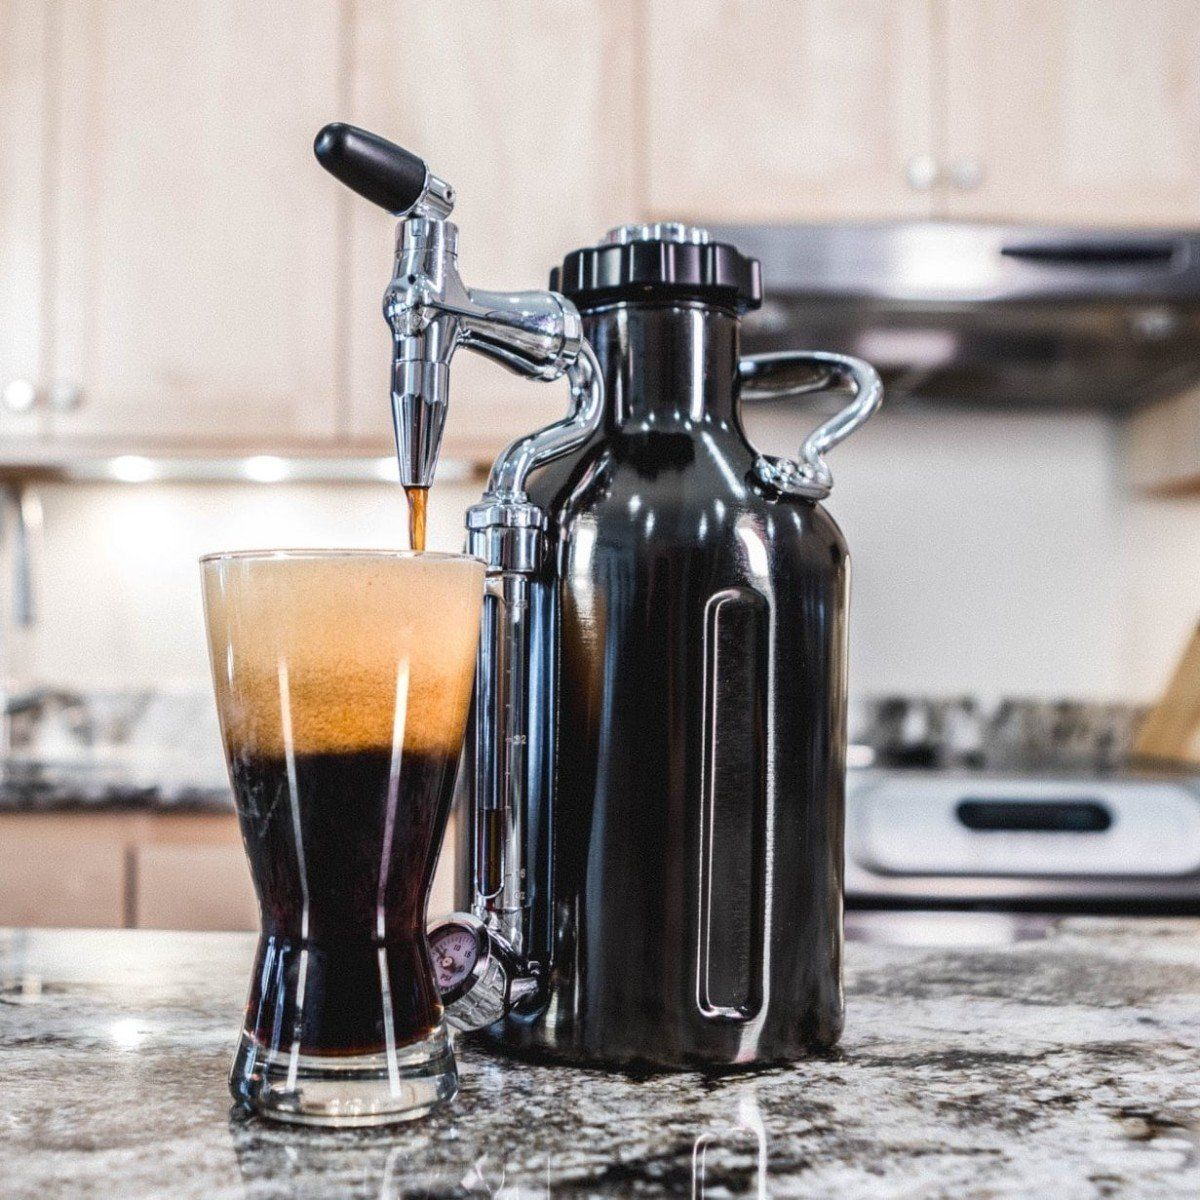 Growlerwerks Ukeg Nitro Cold Brew Coffee Machine Provides Frothy